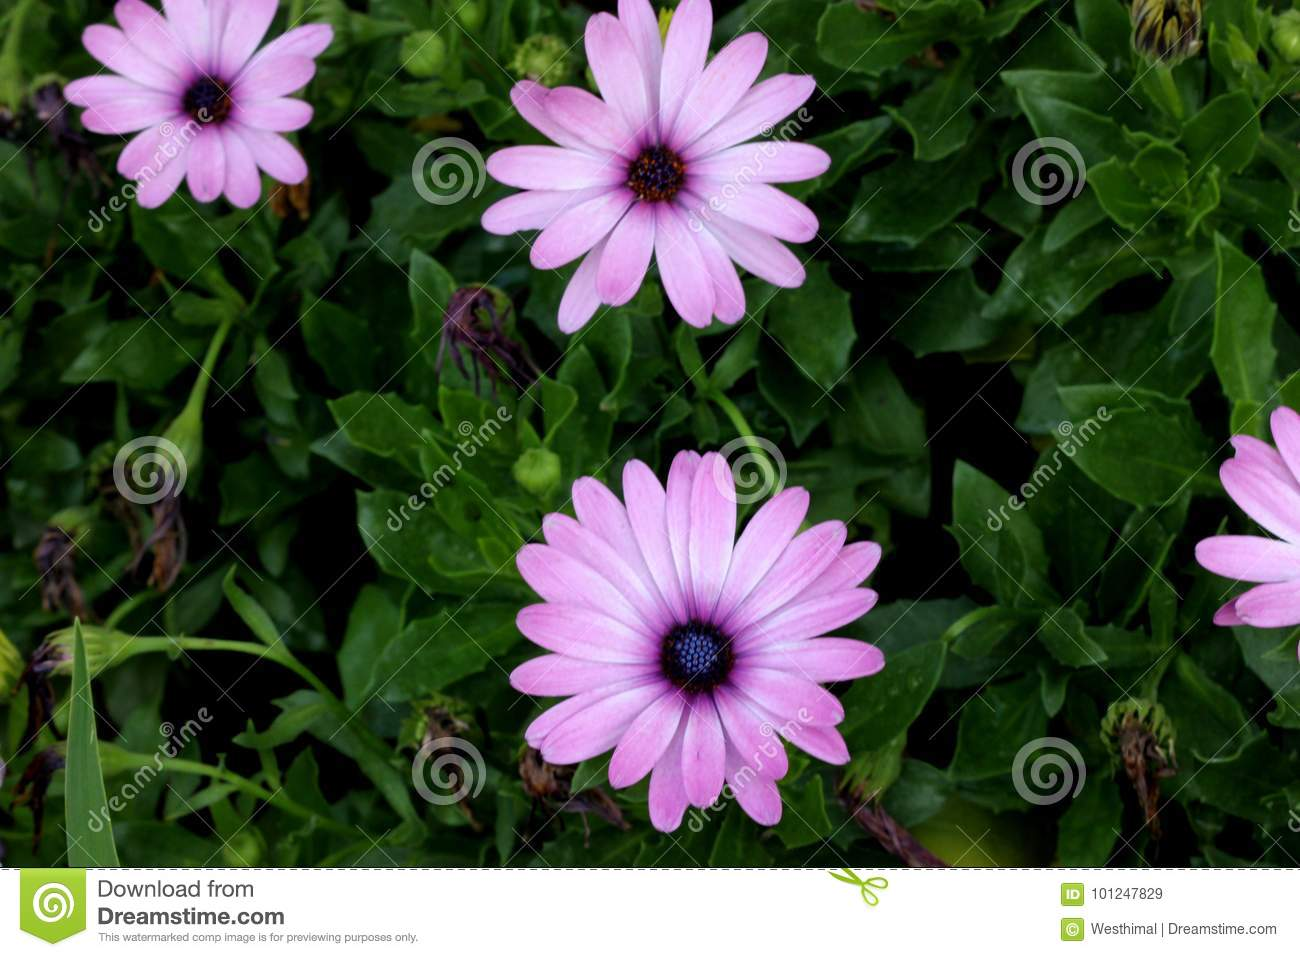 Osteospermum ecklonis african daisy stock image image of stunning osteospermum ecklonis african daisy subshrub with rigid pointed leaves and stunning pale pink daisy like flowers with purplish black disc suitable for izmirmasajfo